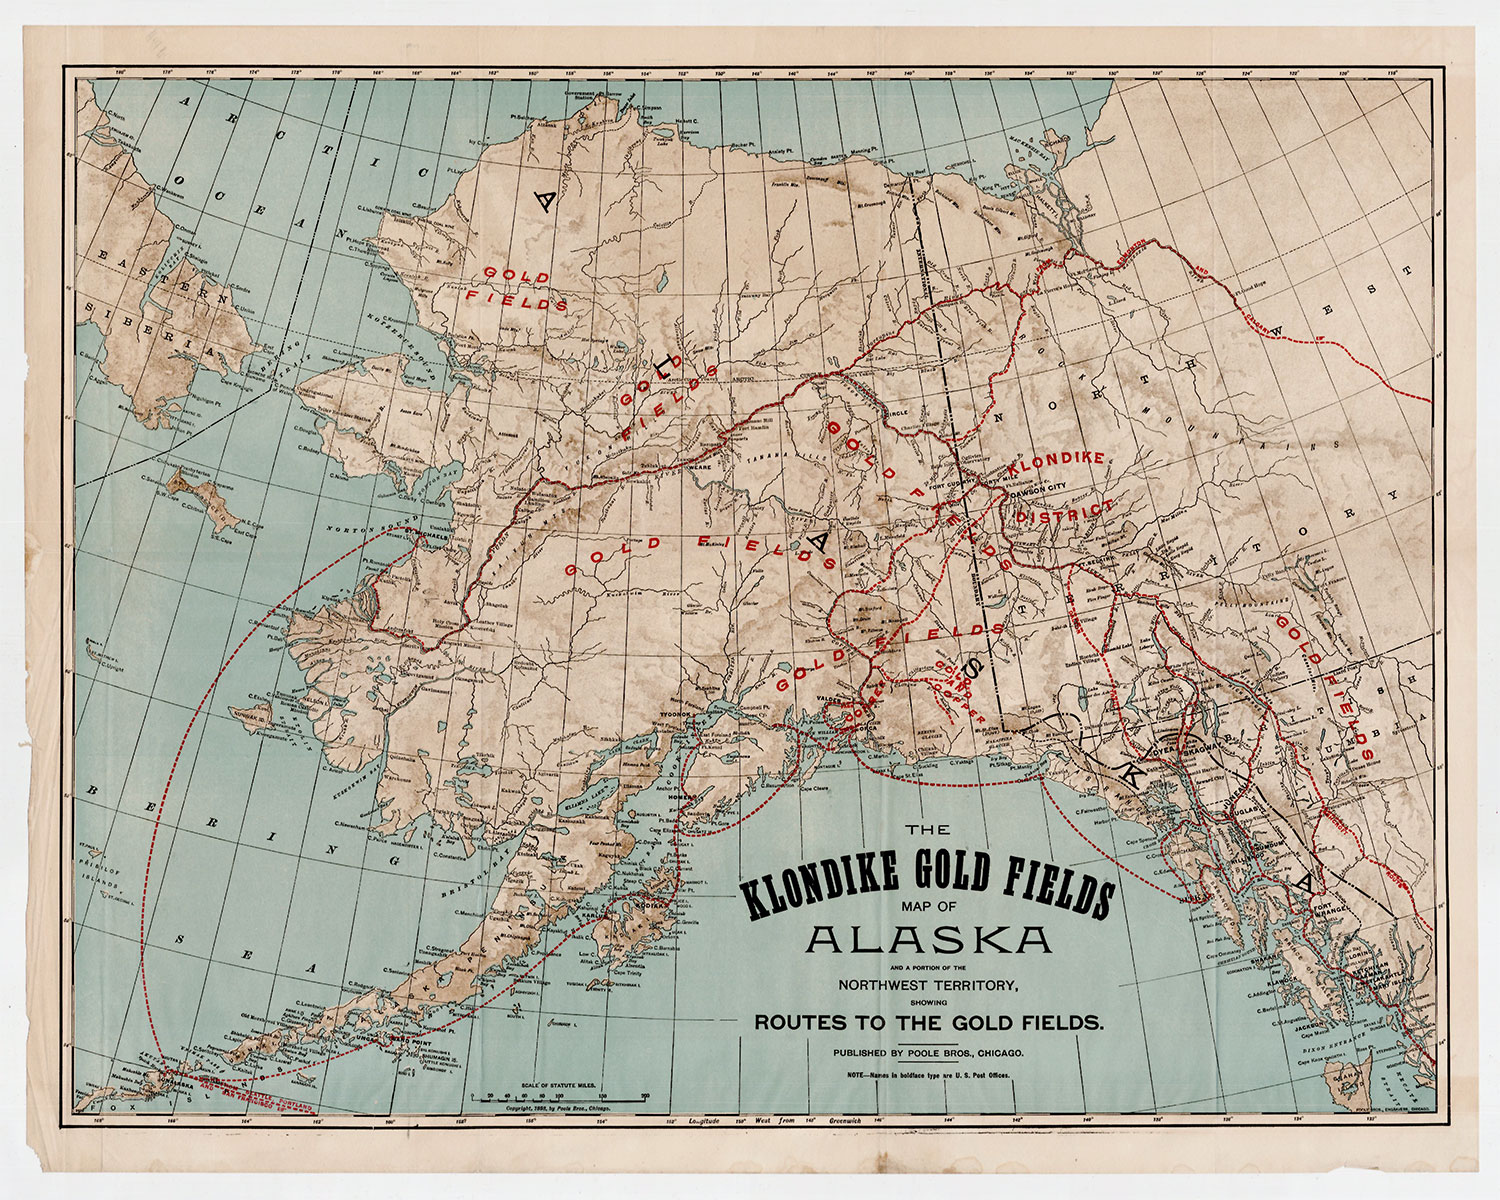 The Klon Gold Fields Map of Alaska and a Portion of the ... Gold Rush Map on z nation map, underground railroad map, the great train robbery map, mining map, the revolution map, gold trade map, klondike map, grand canyon map, gold at sutter's mill, colonial expansion map, alaska map, the 100 map, compromise of 1850 map, gold mining tools, mexican cession map, world copper mine map, missouri compromise map, us gold map, manifest destiny map, gold production map,